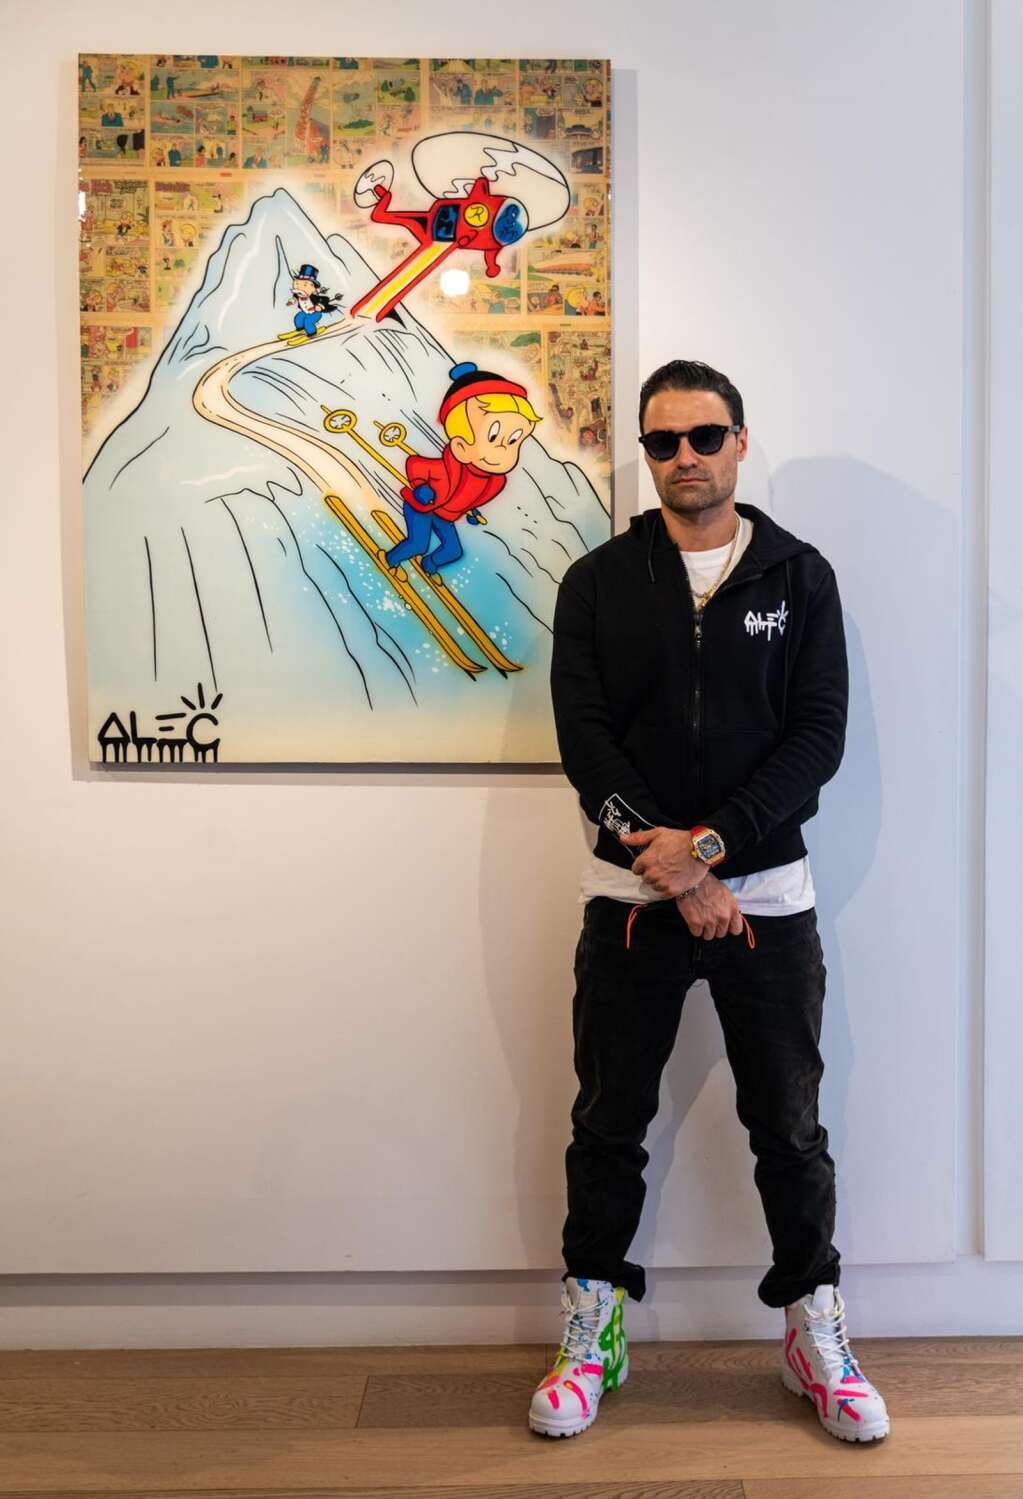 Alec Monopoly at Eden Gallery on Friday, Feb. 19. Courtesy Eden Gallery